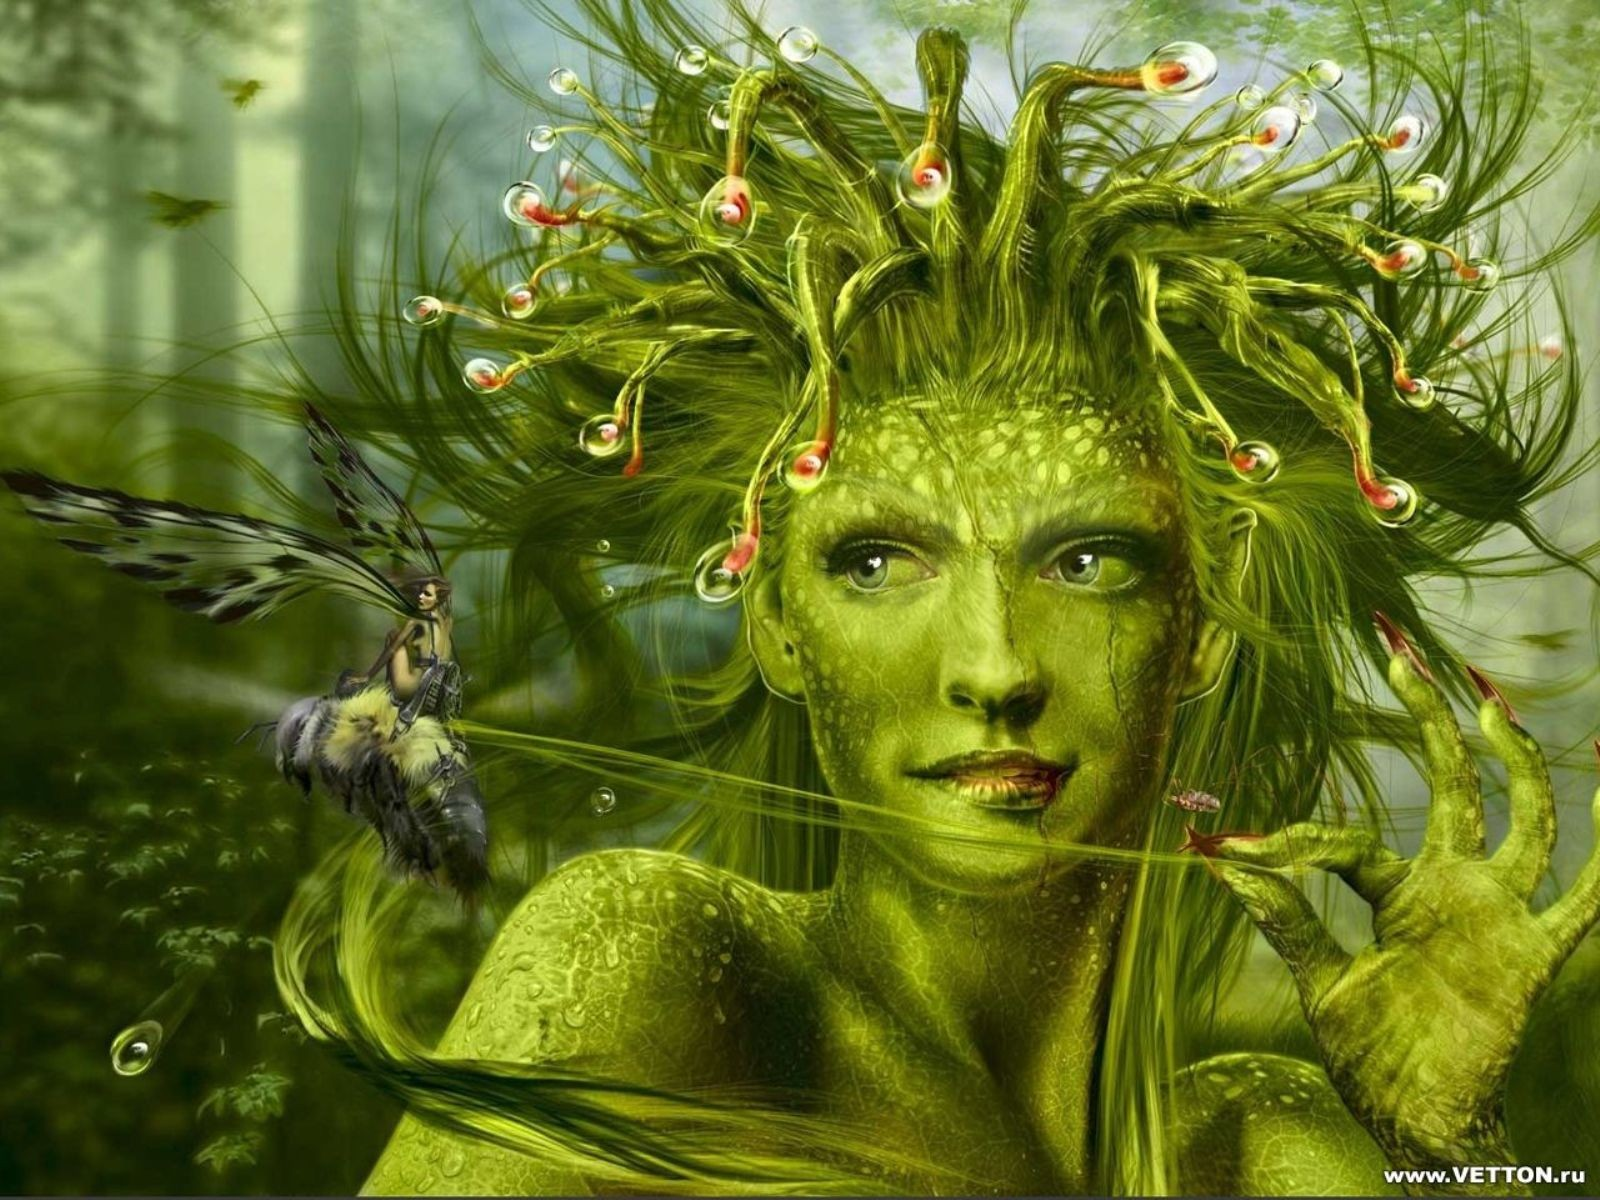 Ash Tree Nymphs Greek Mythology http://wallpapersa.blogspot.com/2012/04/nymphs.html